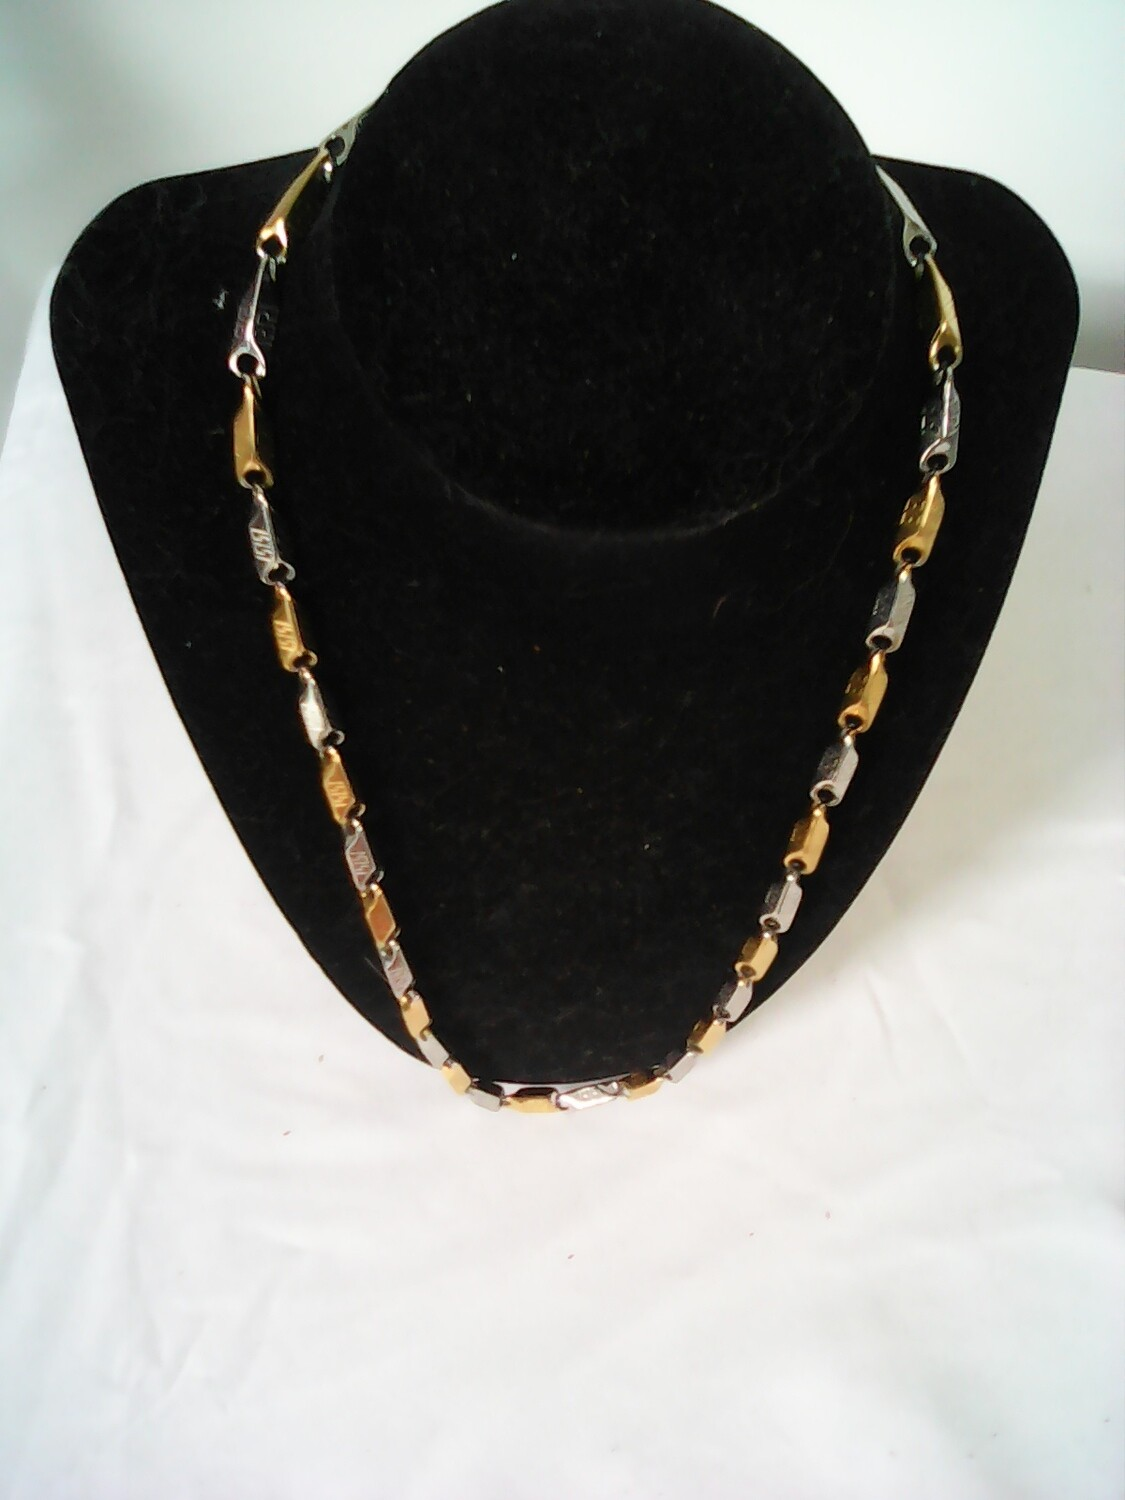 Silver & Gold Stainless Steel Necklace